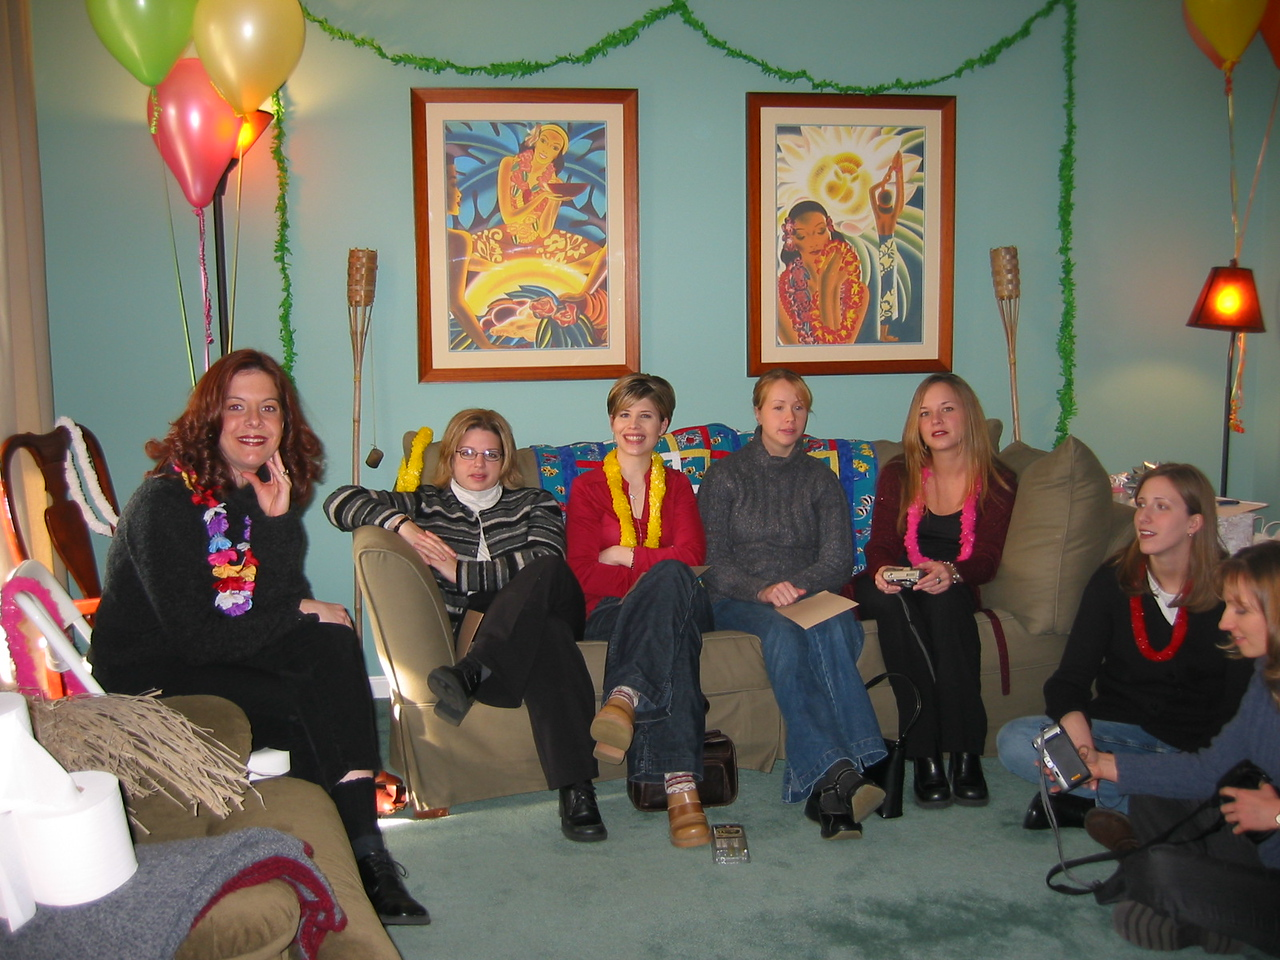 Guests at the shower, Cara, Erin, Rebecca, Kendra, Erica, Amy, and ?